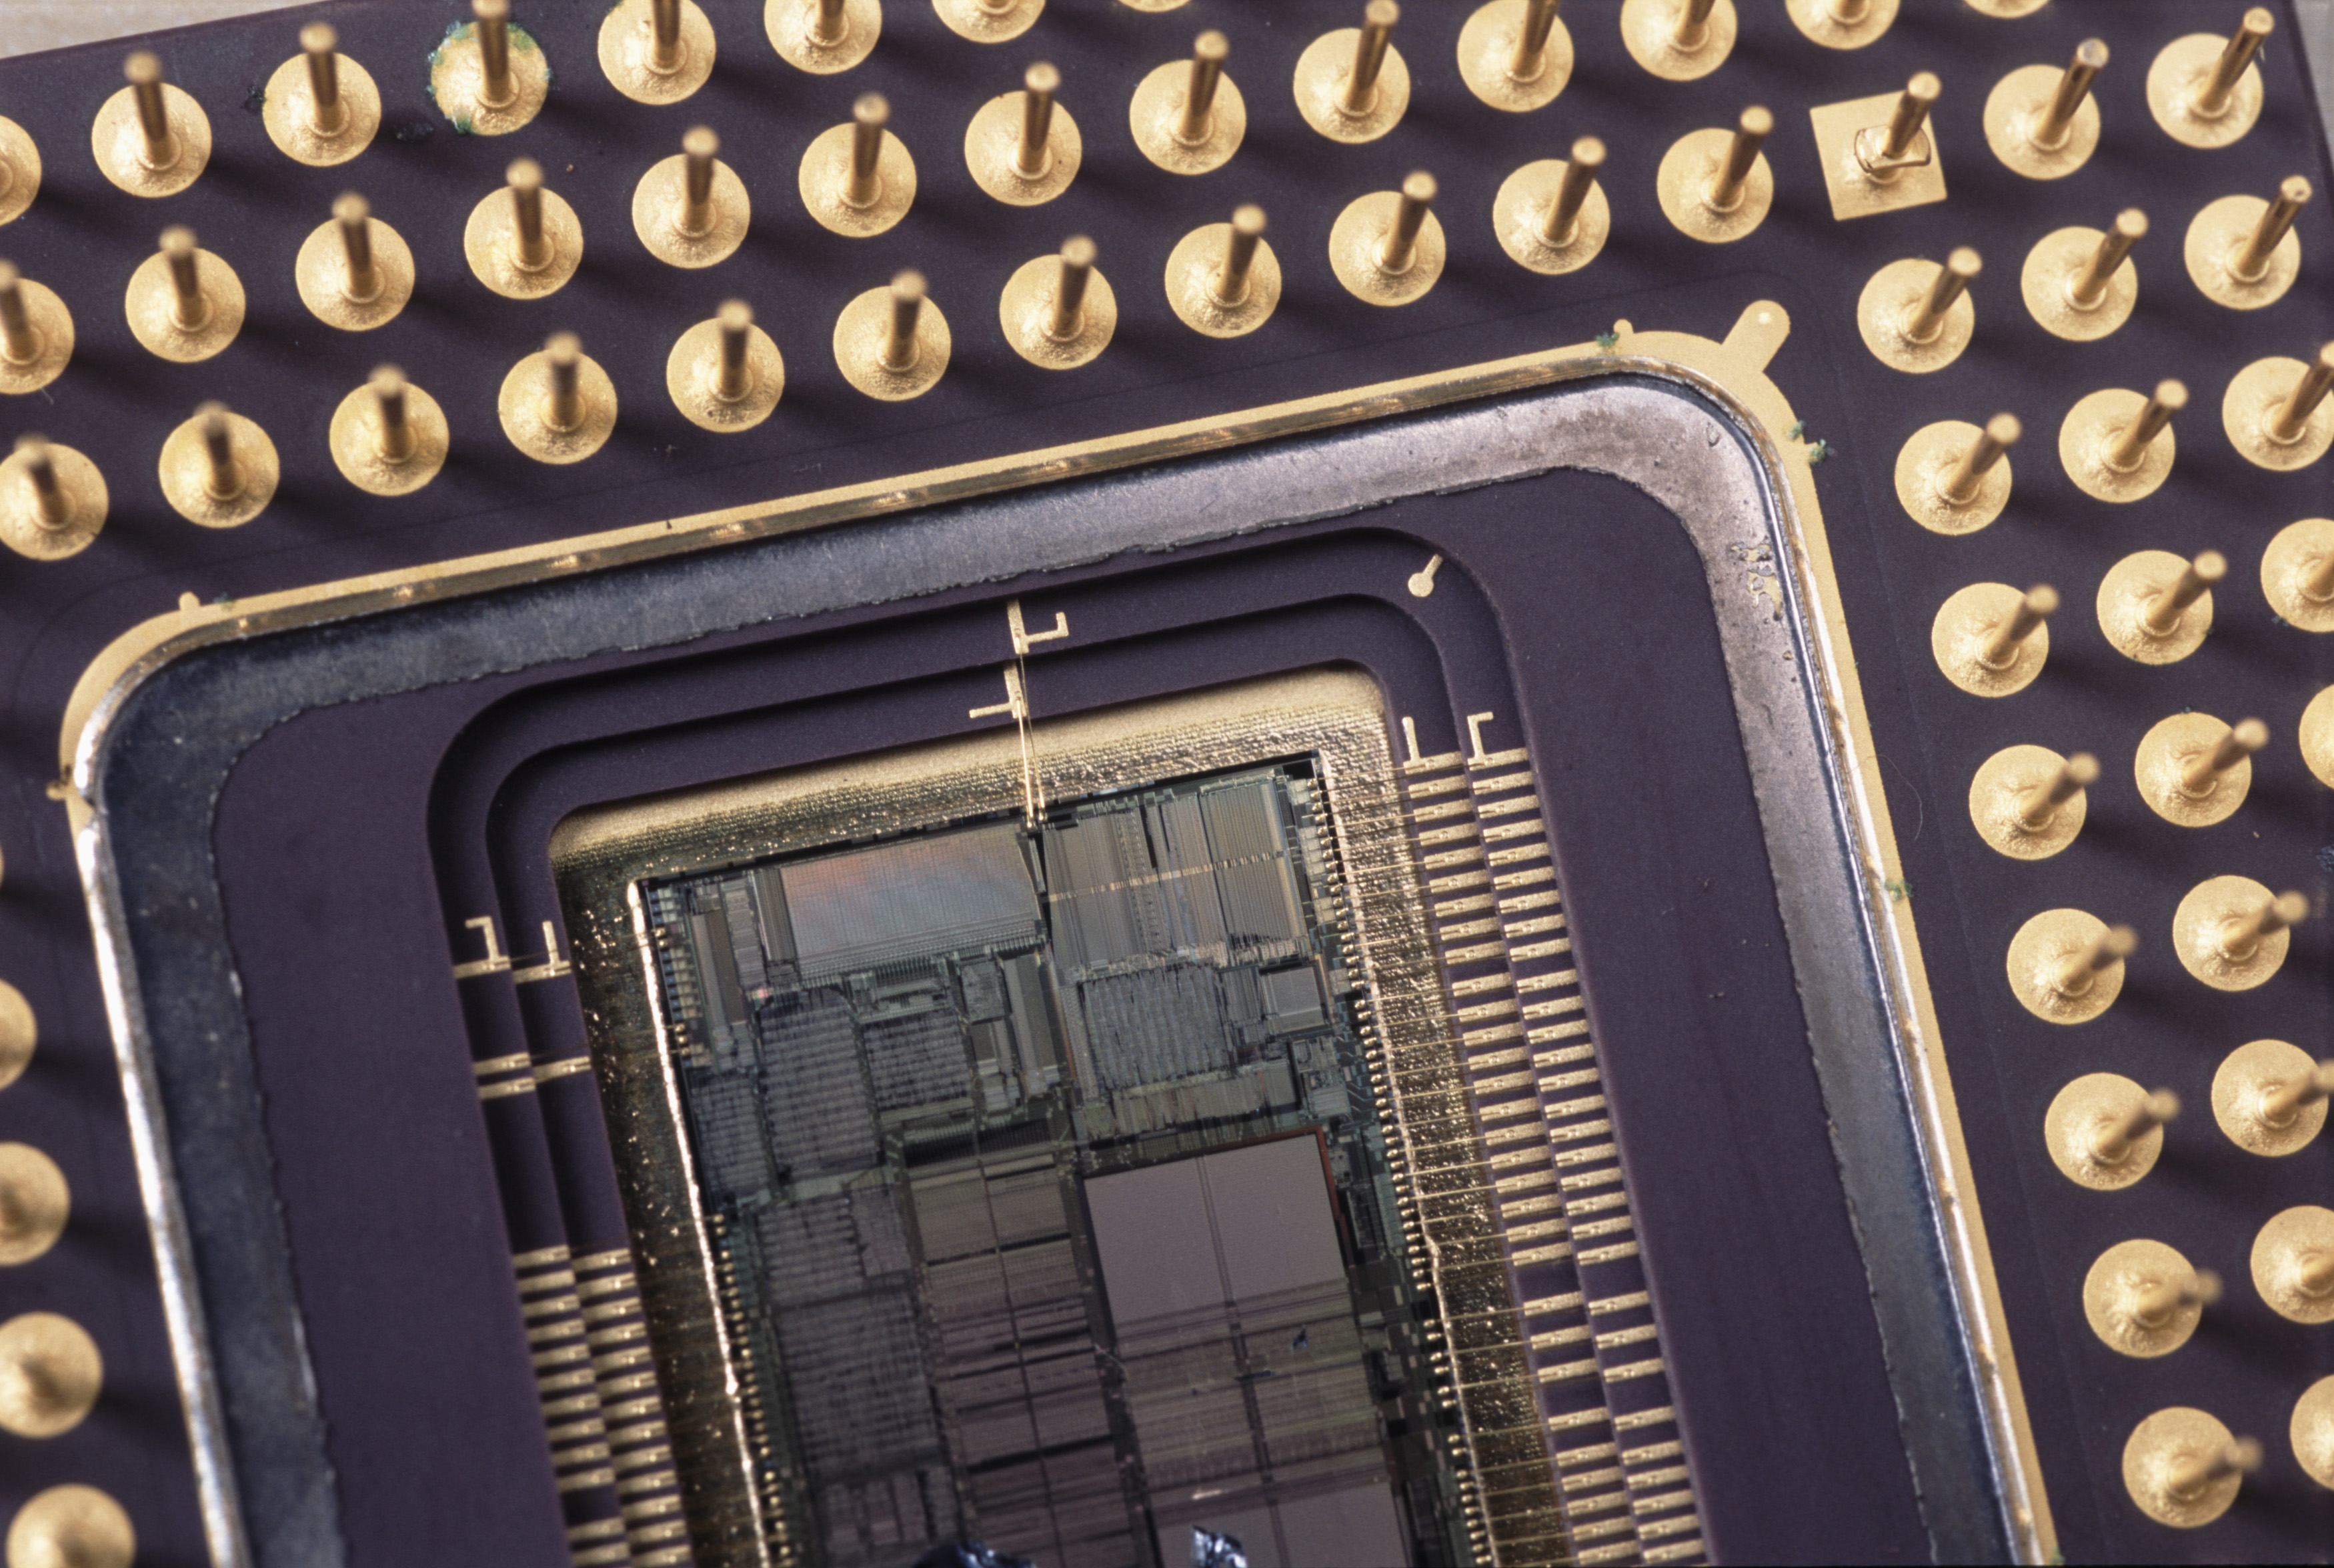 cutaway section showing the inside of a microprocessor chip. the silicone wafer of the chip show visible patterns outlining tarious arrays of memory, registers and other circuits used in the CPU